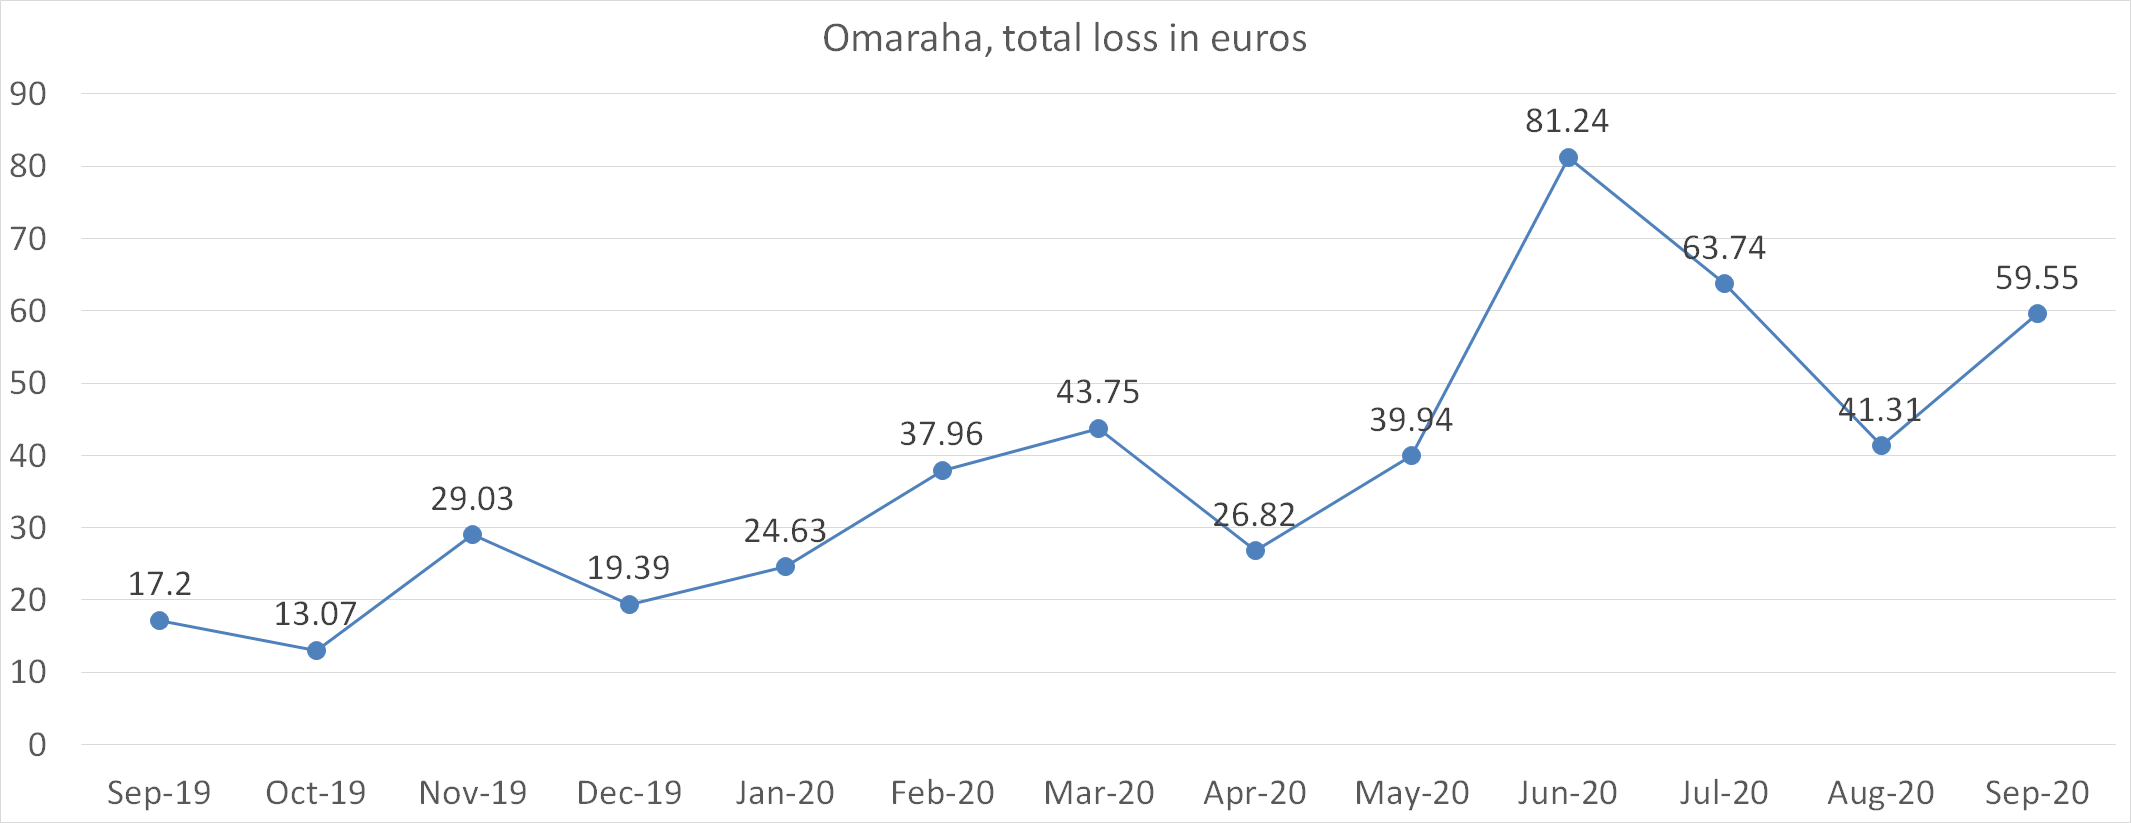 Omaraha, total loss in euros september 2020